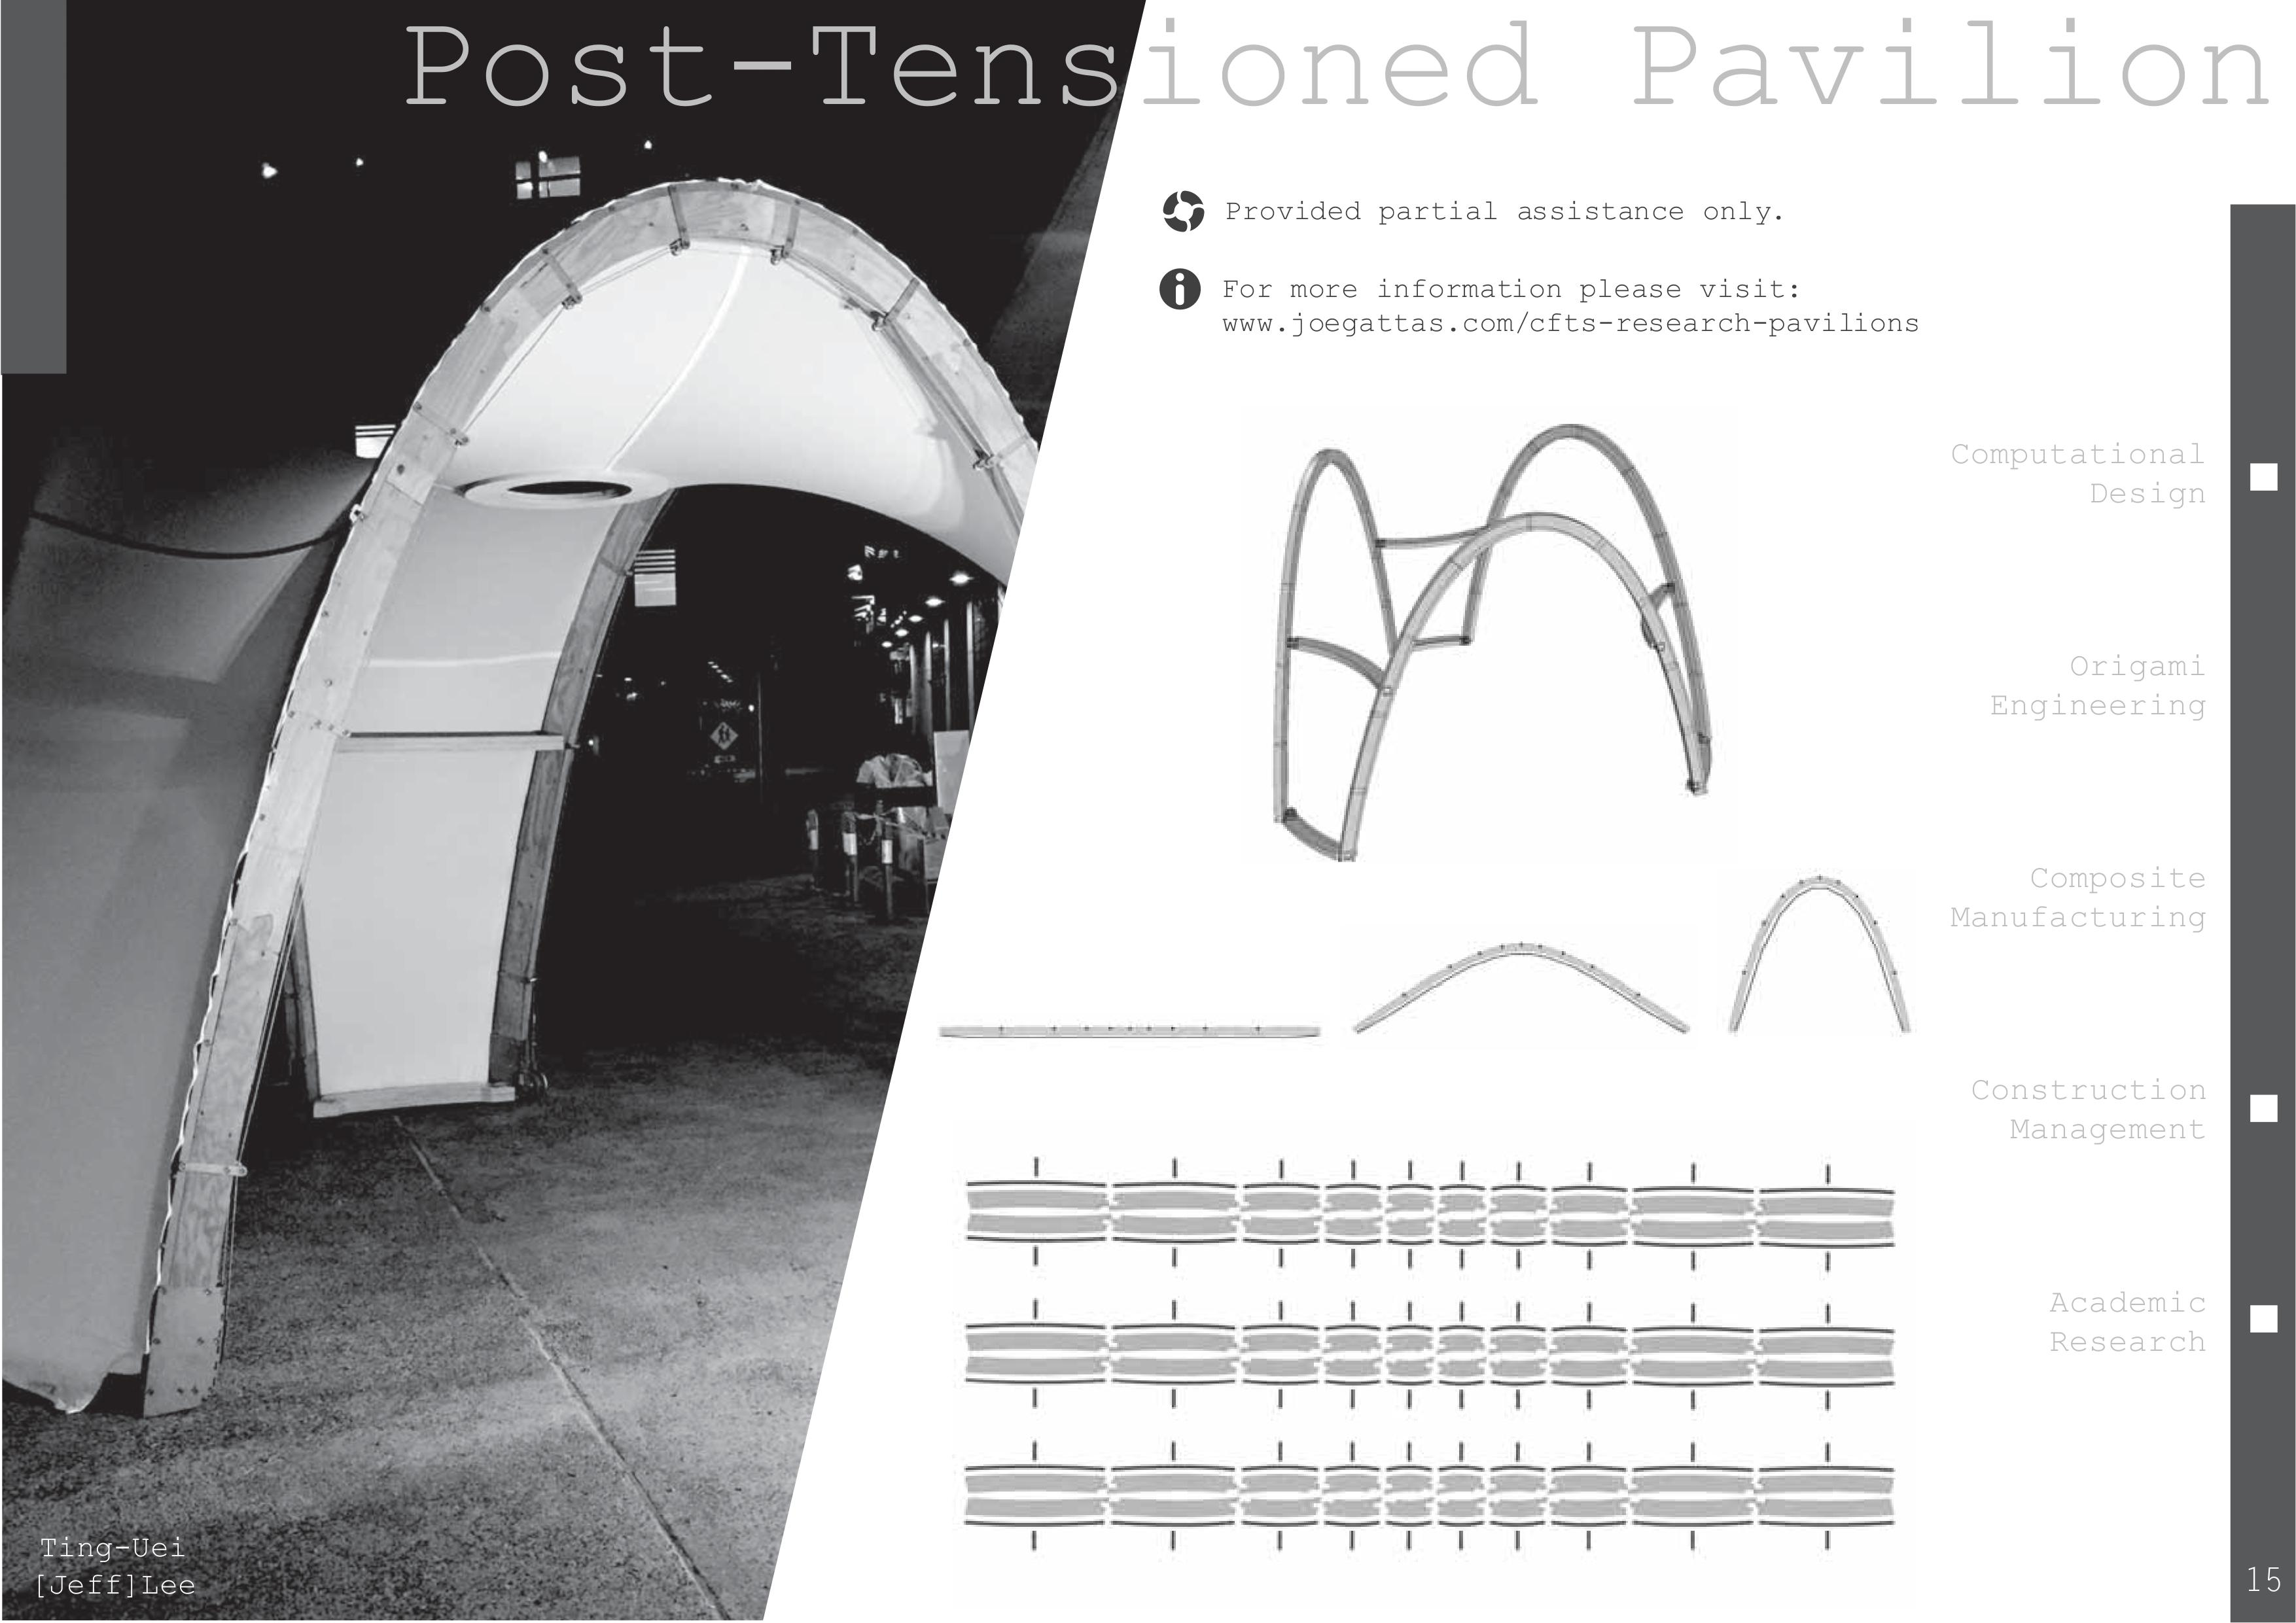 Post-Tensioned Pavilion